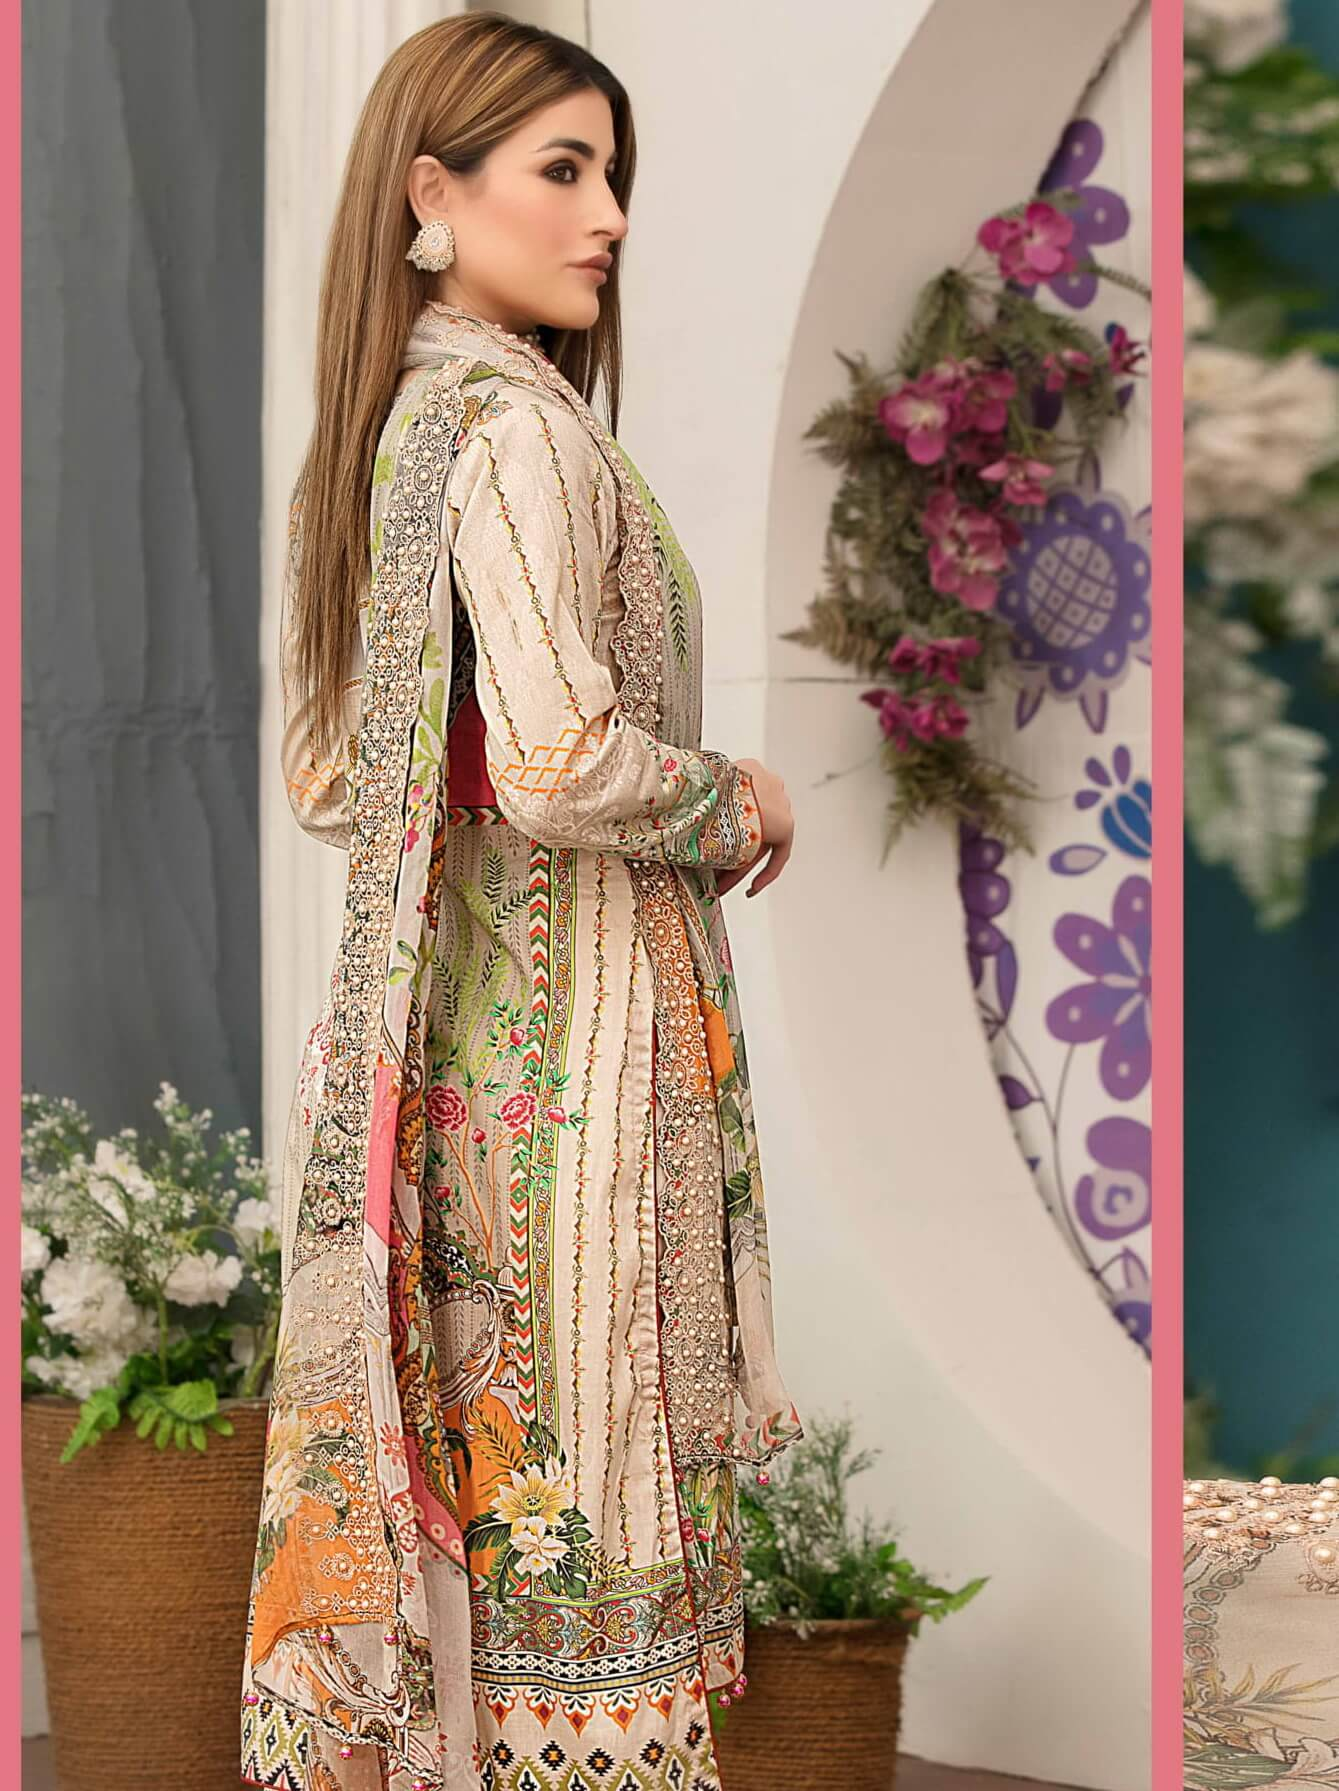 TAWAKKAL Fabrics Hand Work Embroidered Lawn 3PC Suit D-8796 - FaisalFabrics.pk